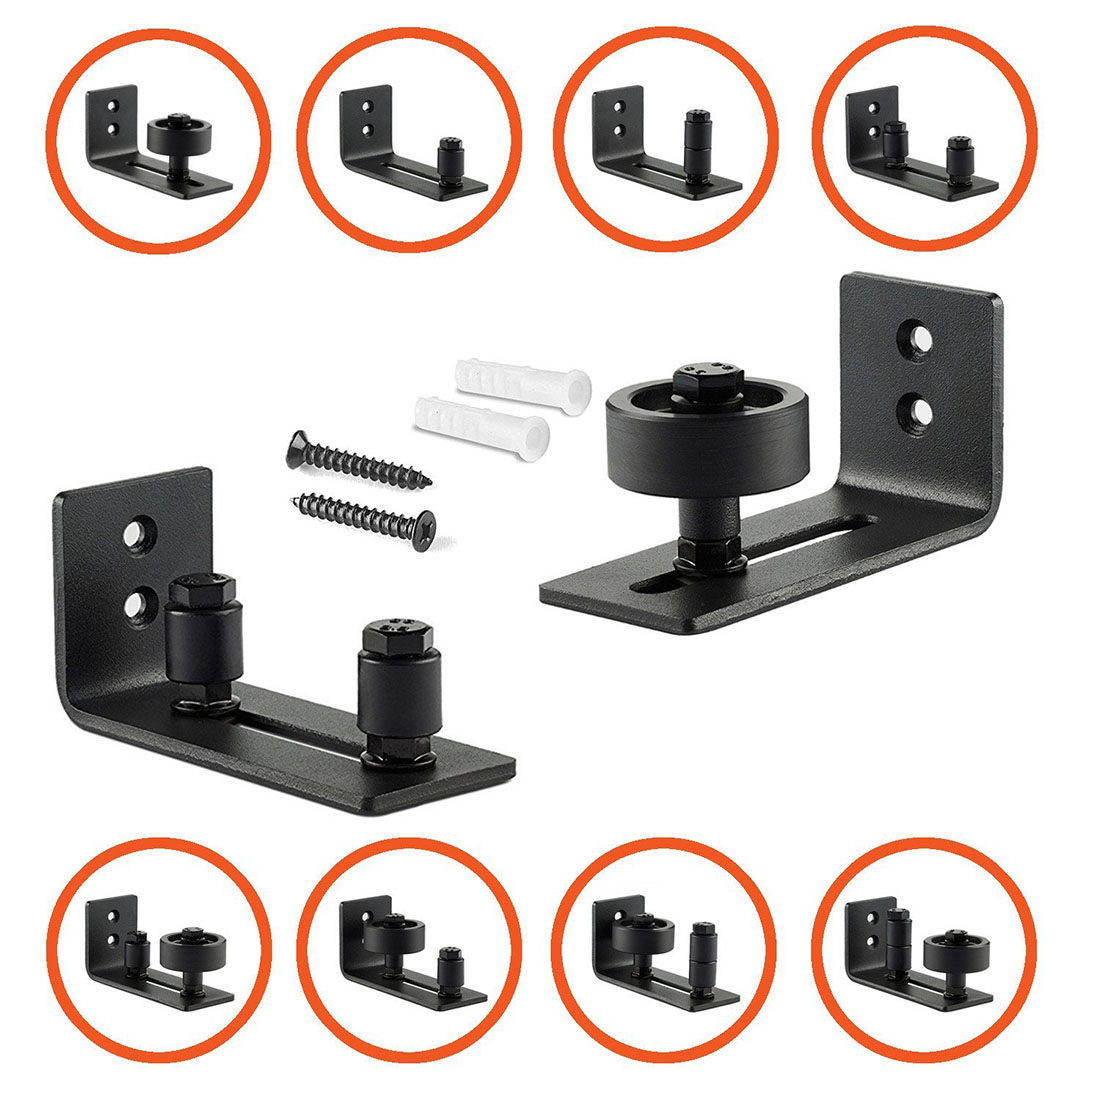 Hot Sale Adjustable Wall Mount Guide With 8 Different Setups For